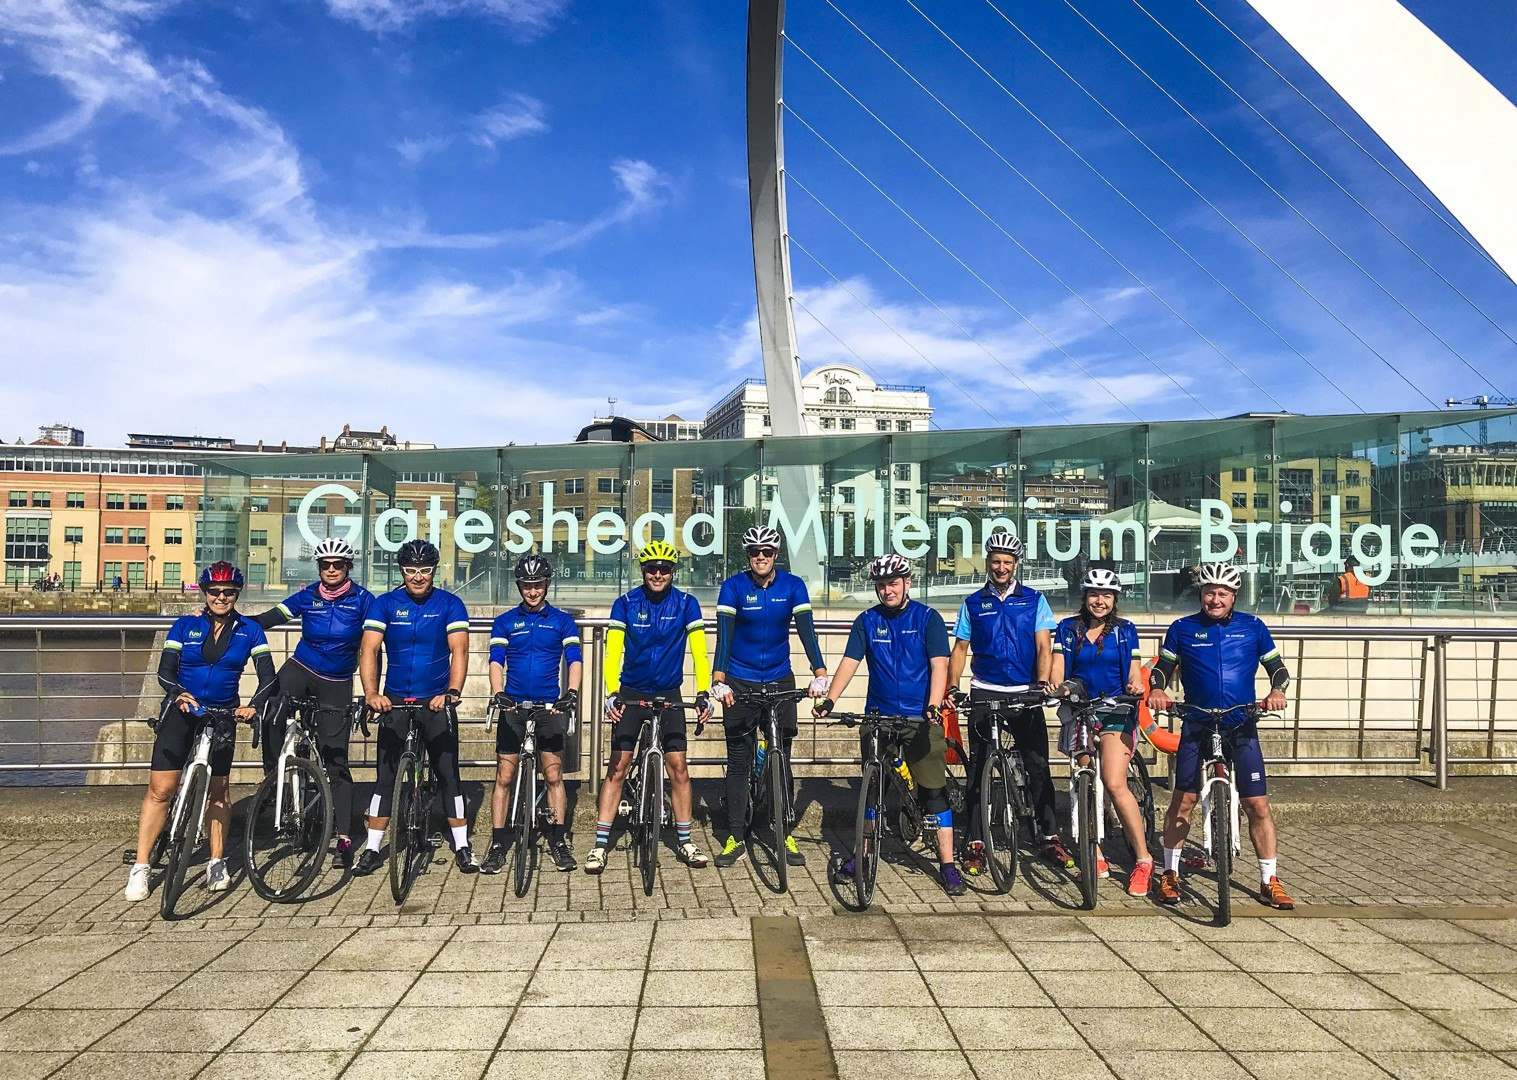 newcastle-cycling-tour-from-whitehaven-group-friends.jpg - UK - C2C - Coast to Coast - Supported Leisure Cycling Holiday - Family Cycling